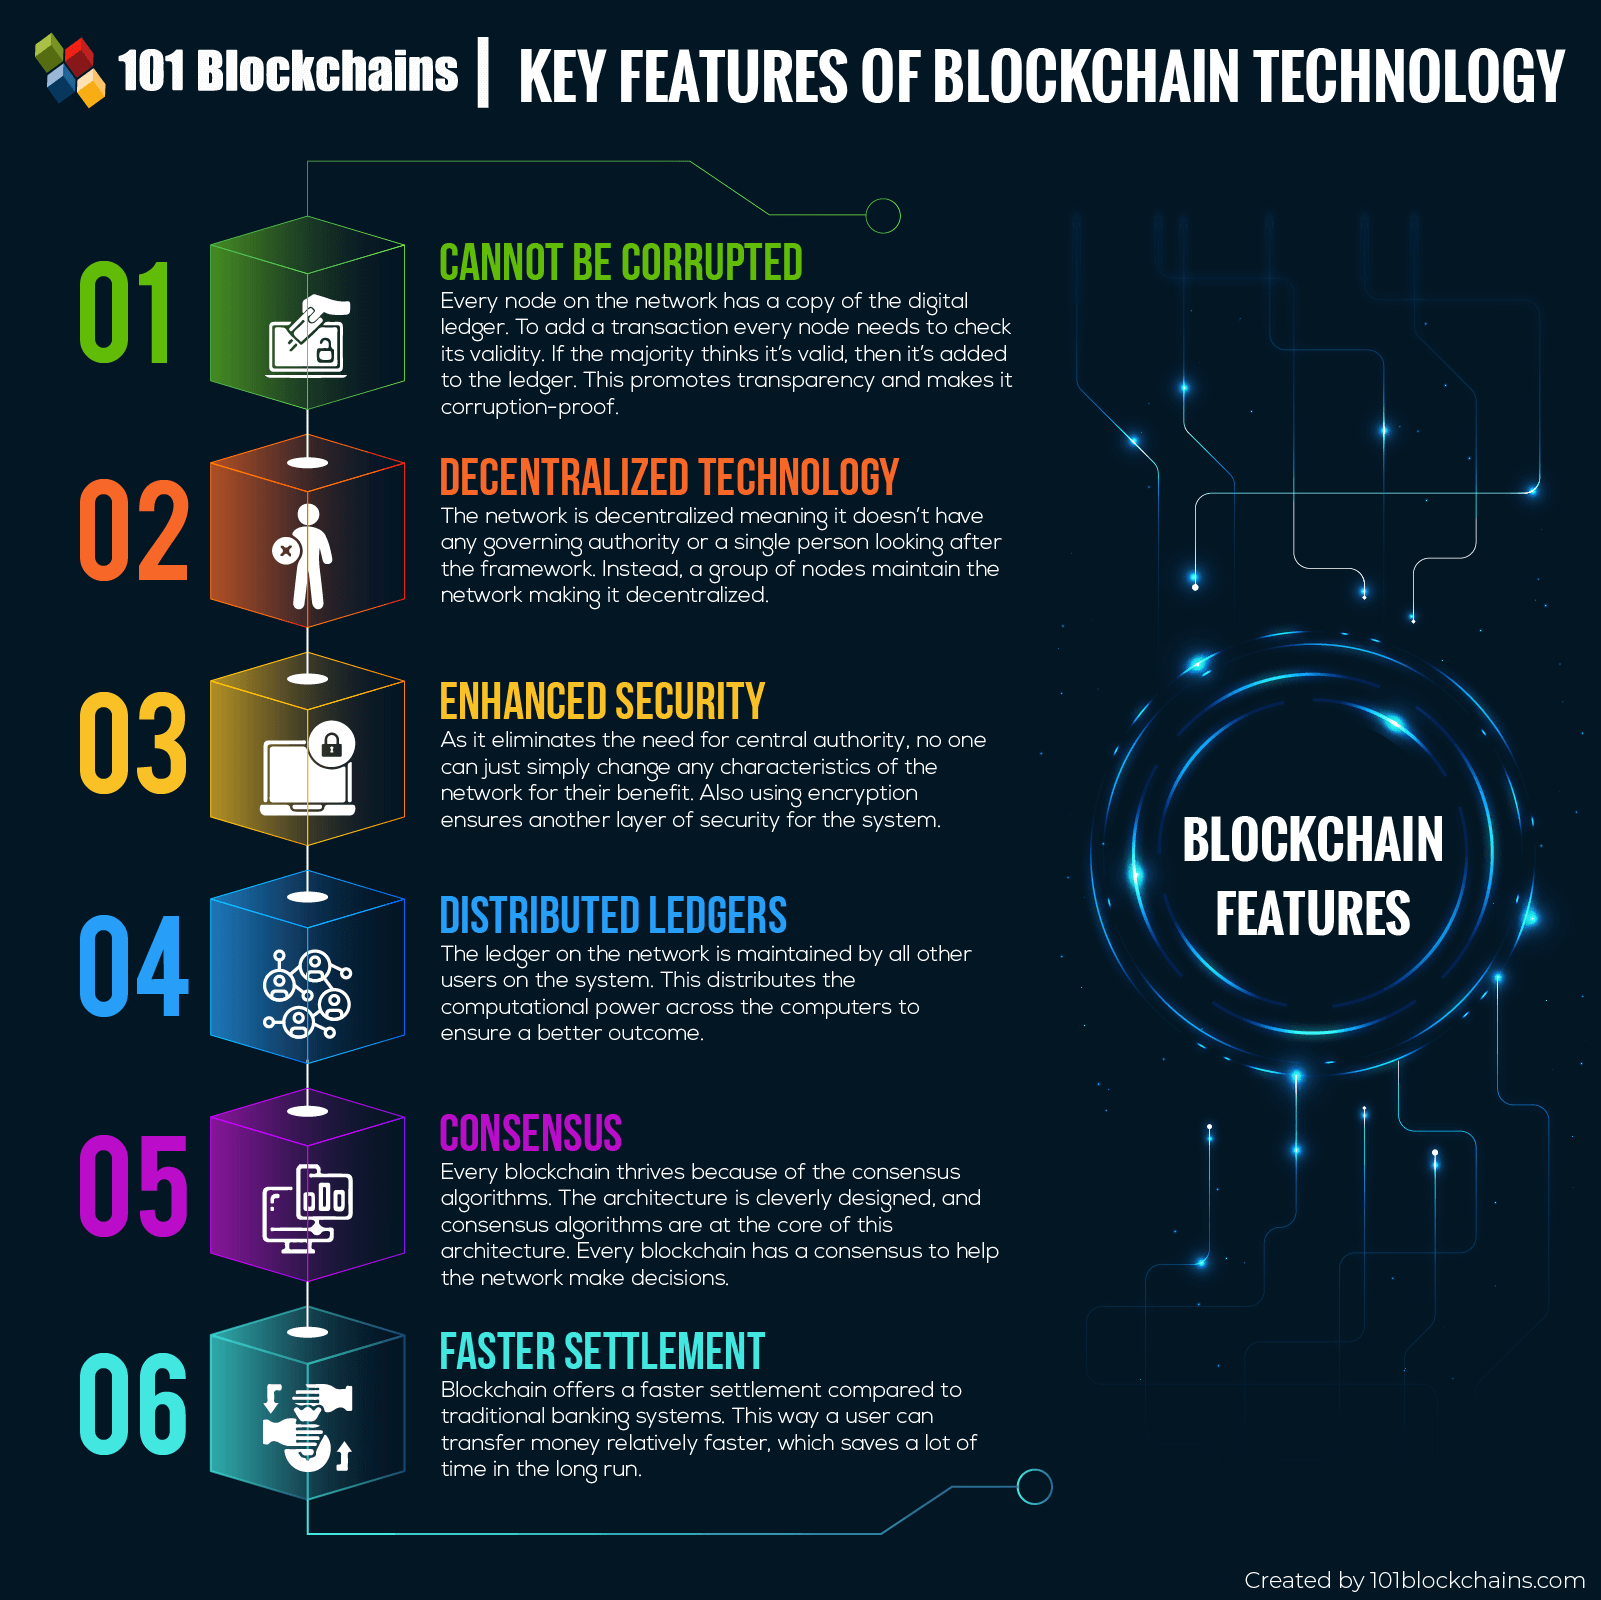 Key Blockchain Features